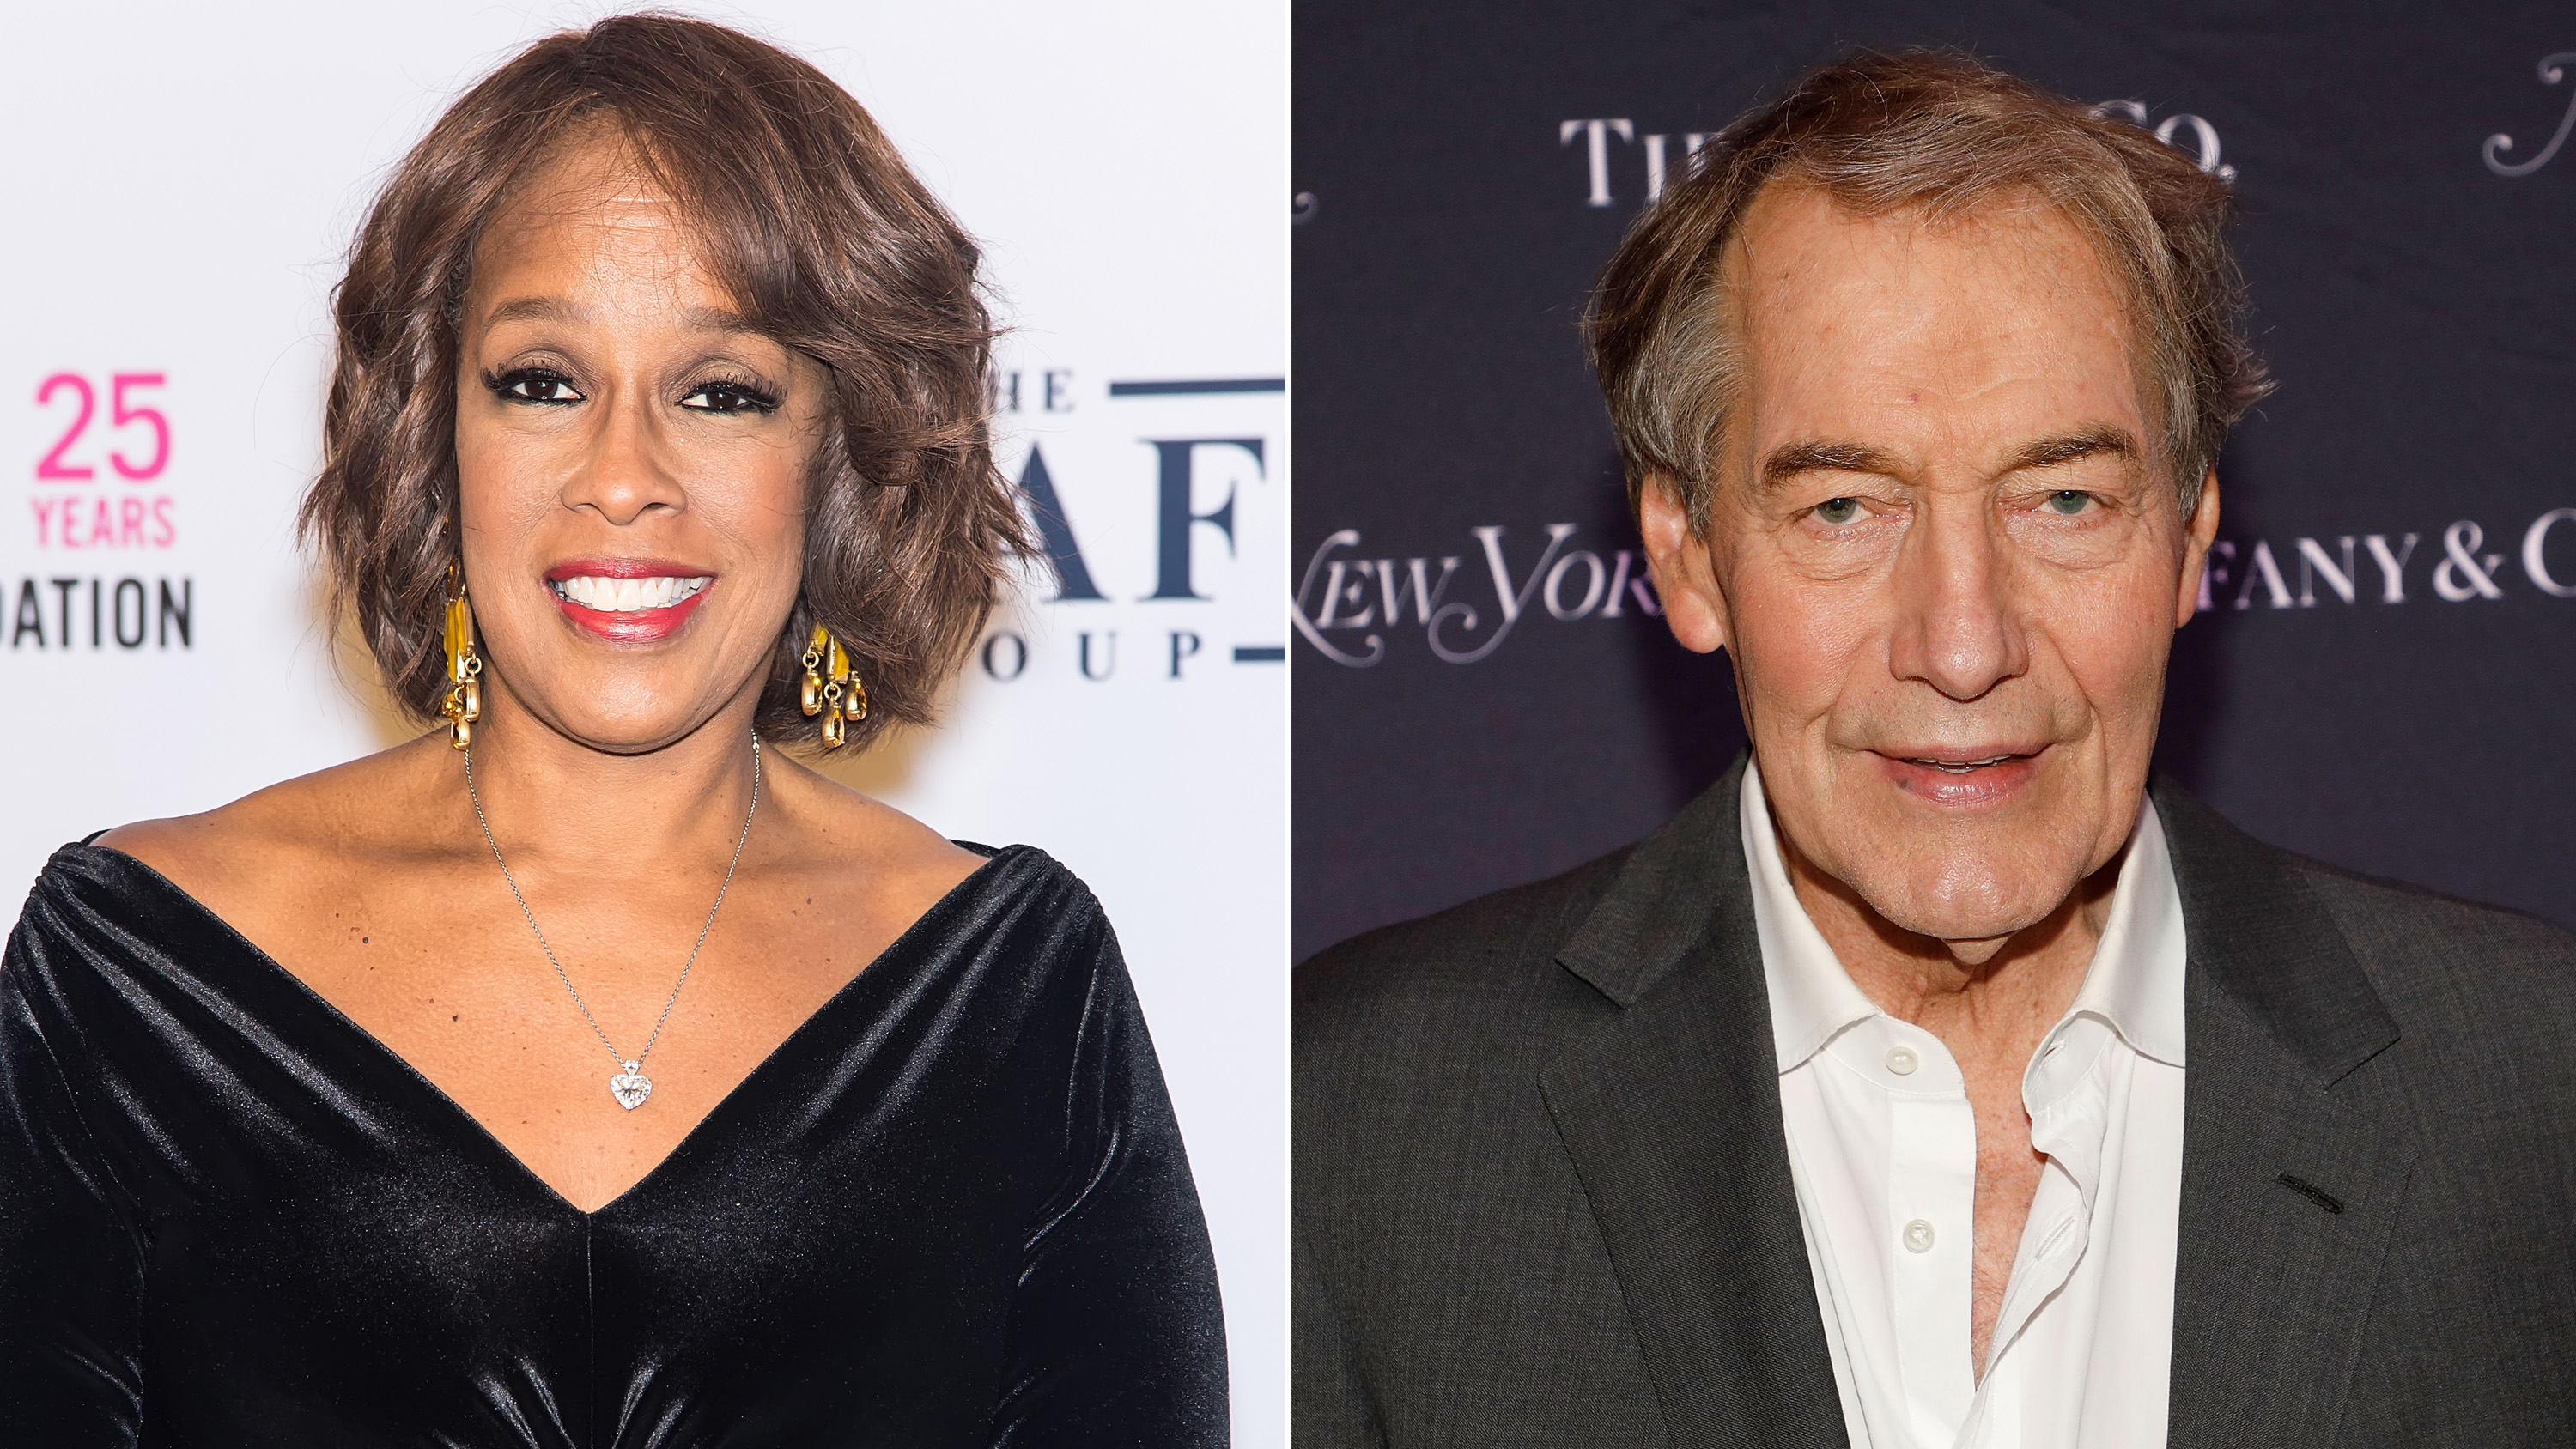 Gayle King (left) and Charlie Rose (right).